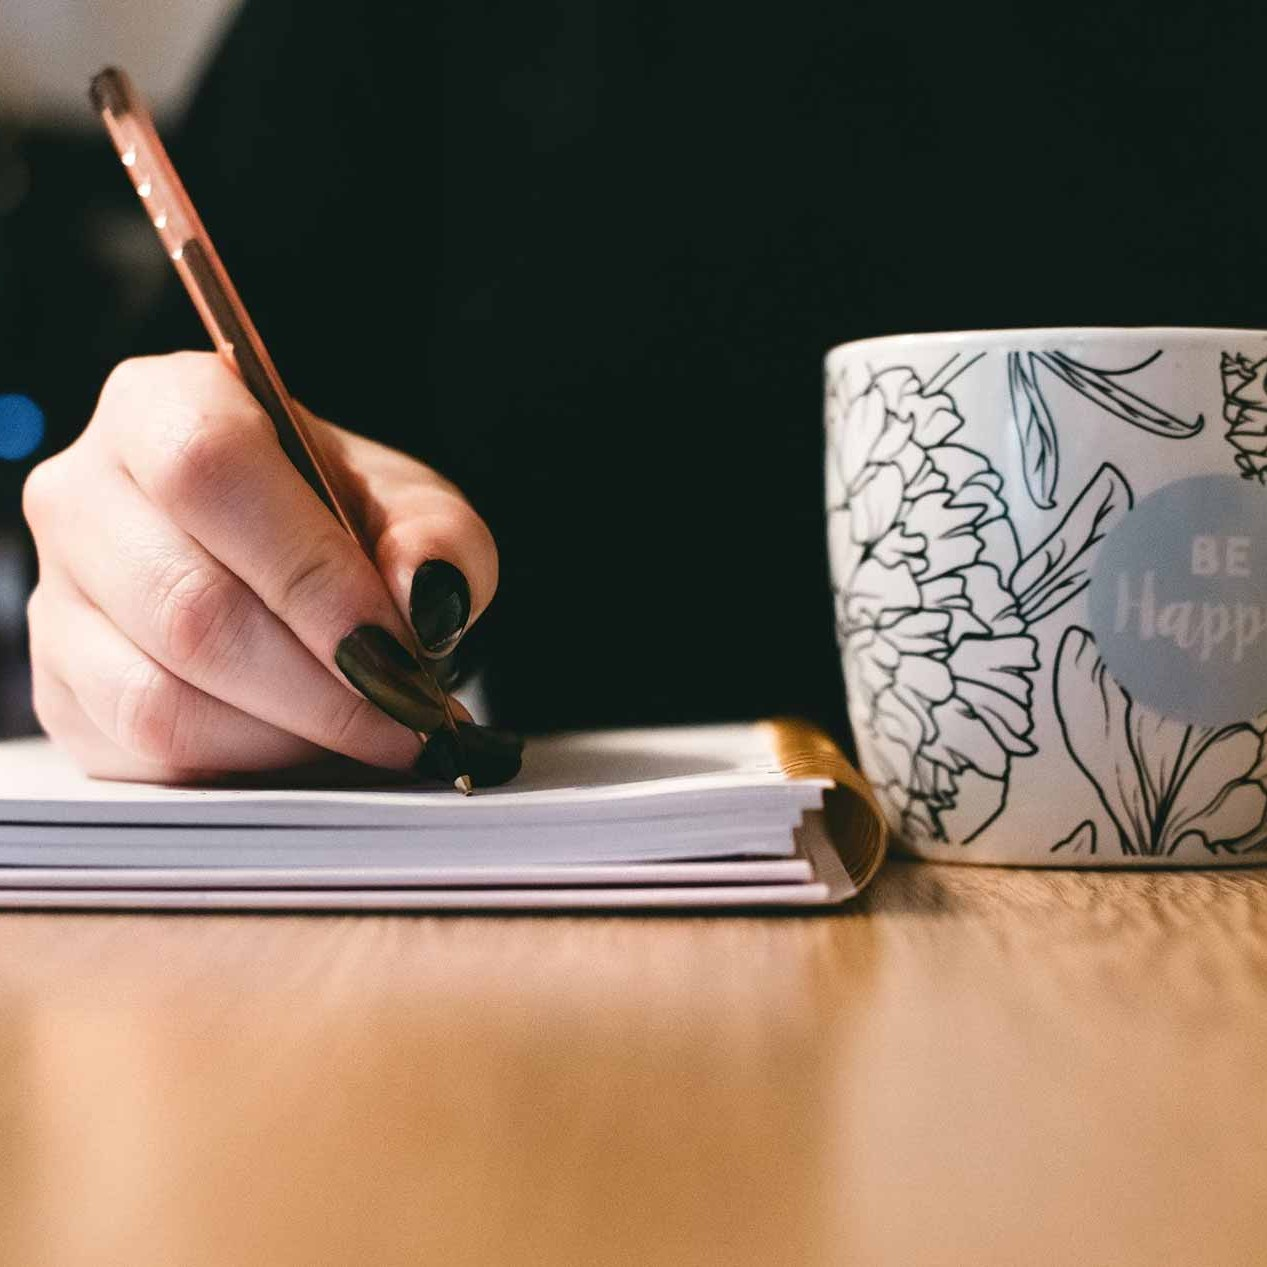 Incorporating Therapeutic Writing into our lives